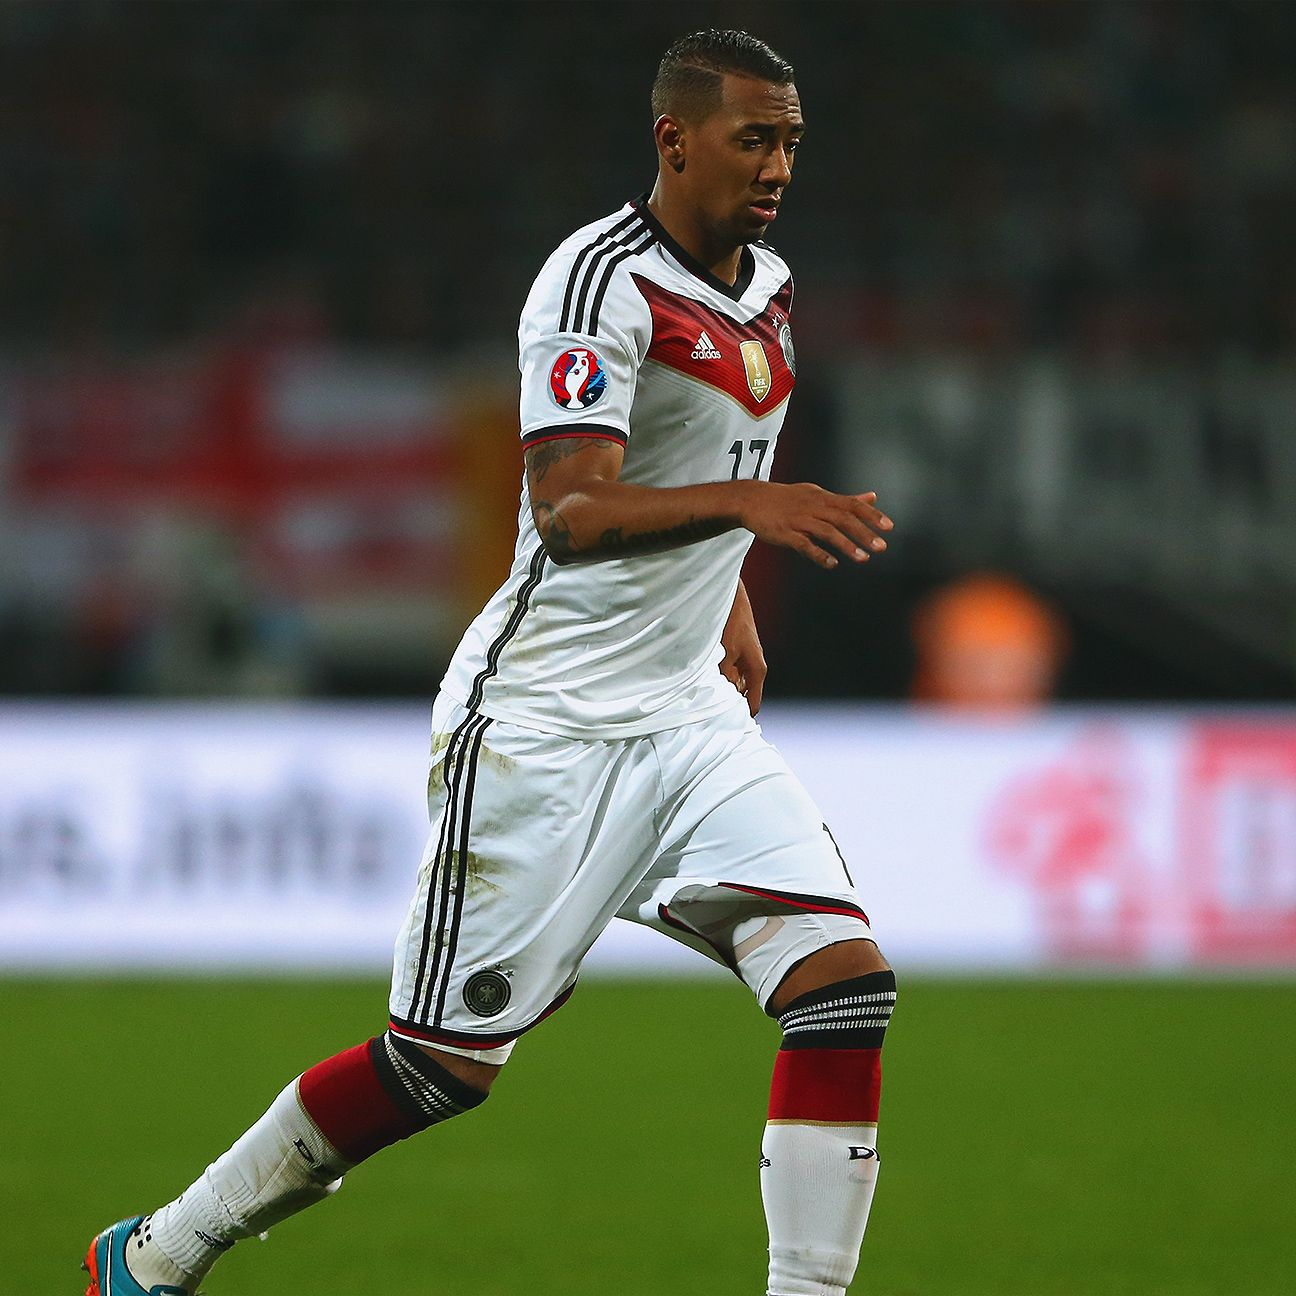 Jerome Boateng anchored Germany's superb defensive effort in Brazil.